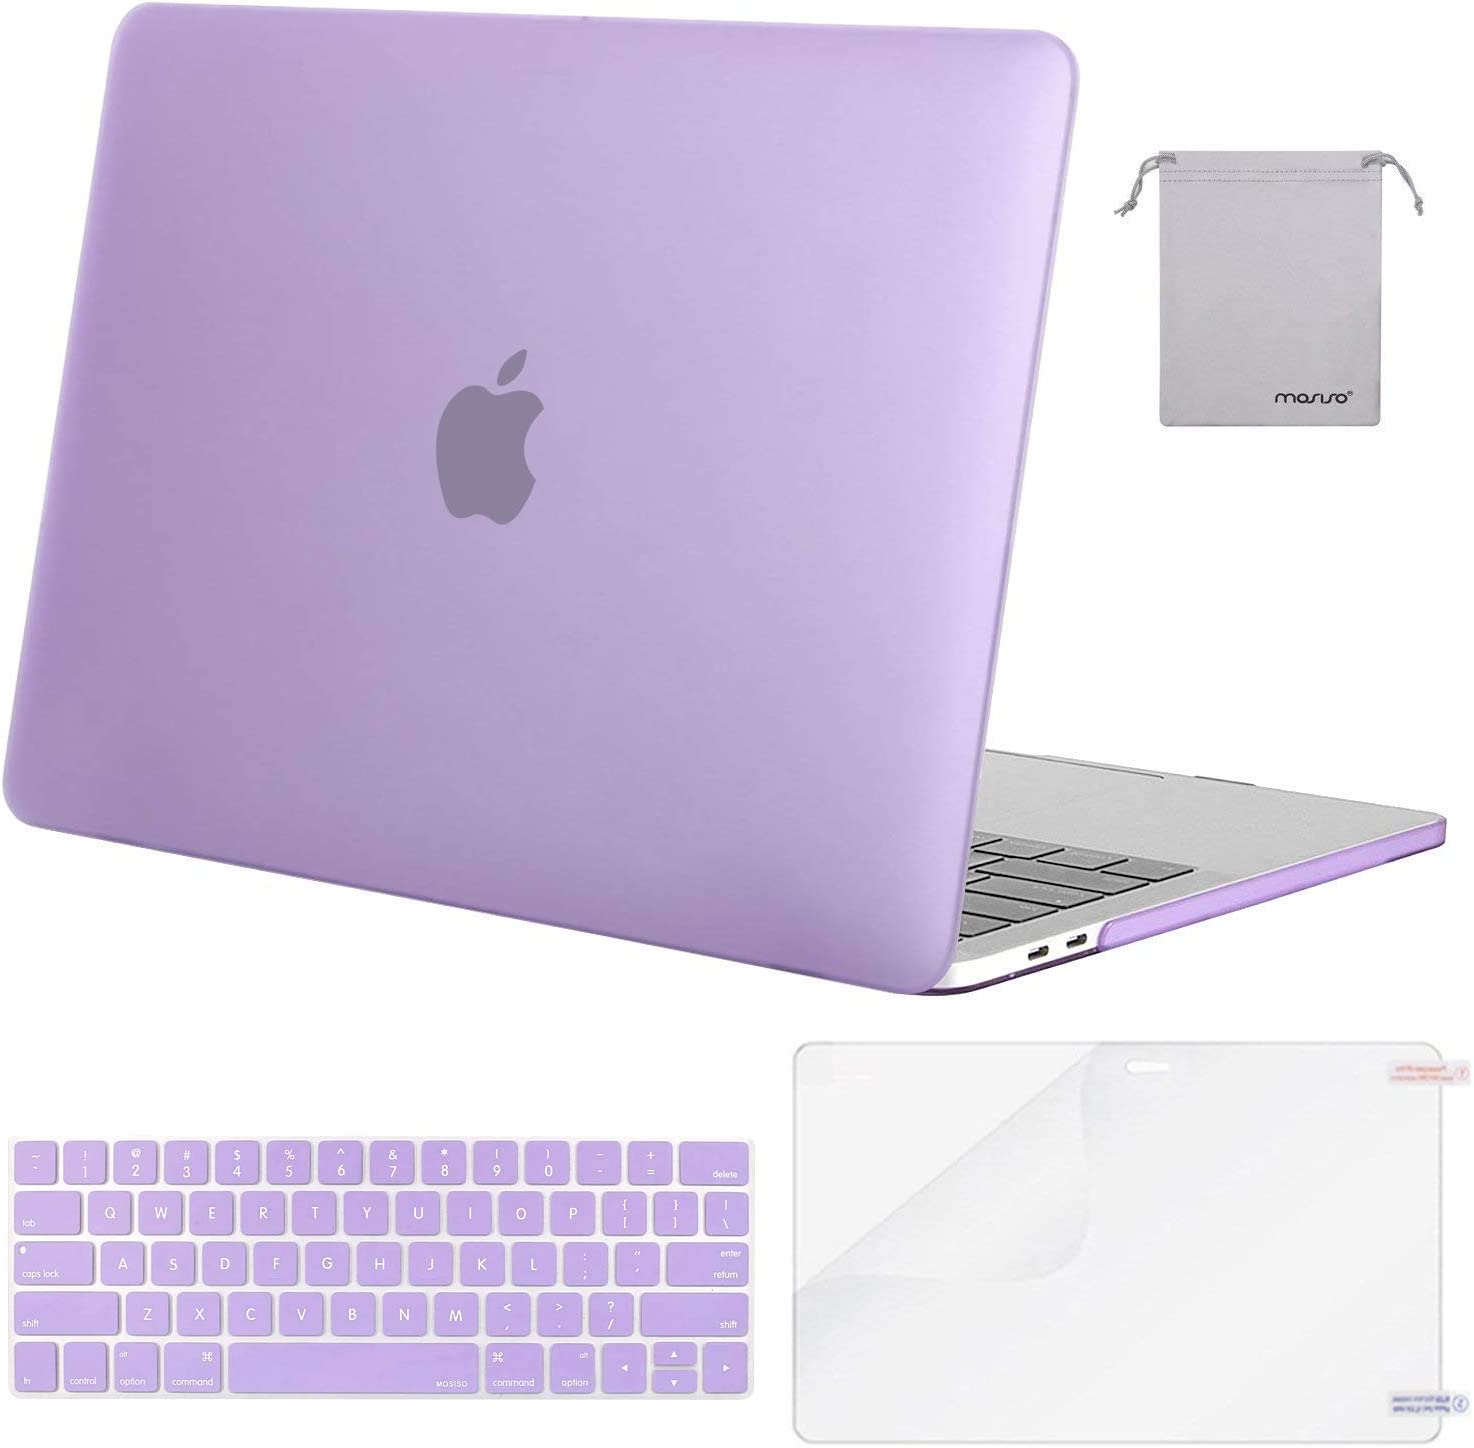 MOSISO MacBook Pro 13 inch Case 2019 2018 2017 2016 Release A2159 A1989 A1706 A1708, Plastic Hard Shell Case&Keyboard Cover&Screen Protector&Storage Bag Compatible with MacBook Pro 13, Light Purple